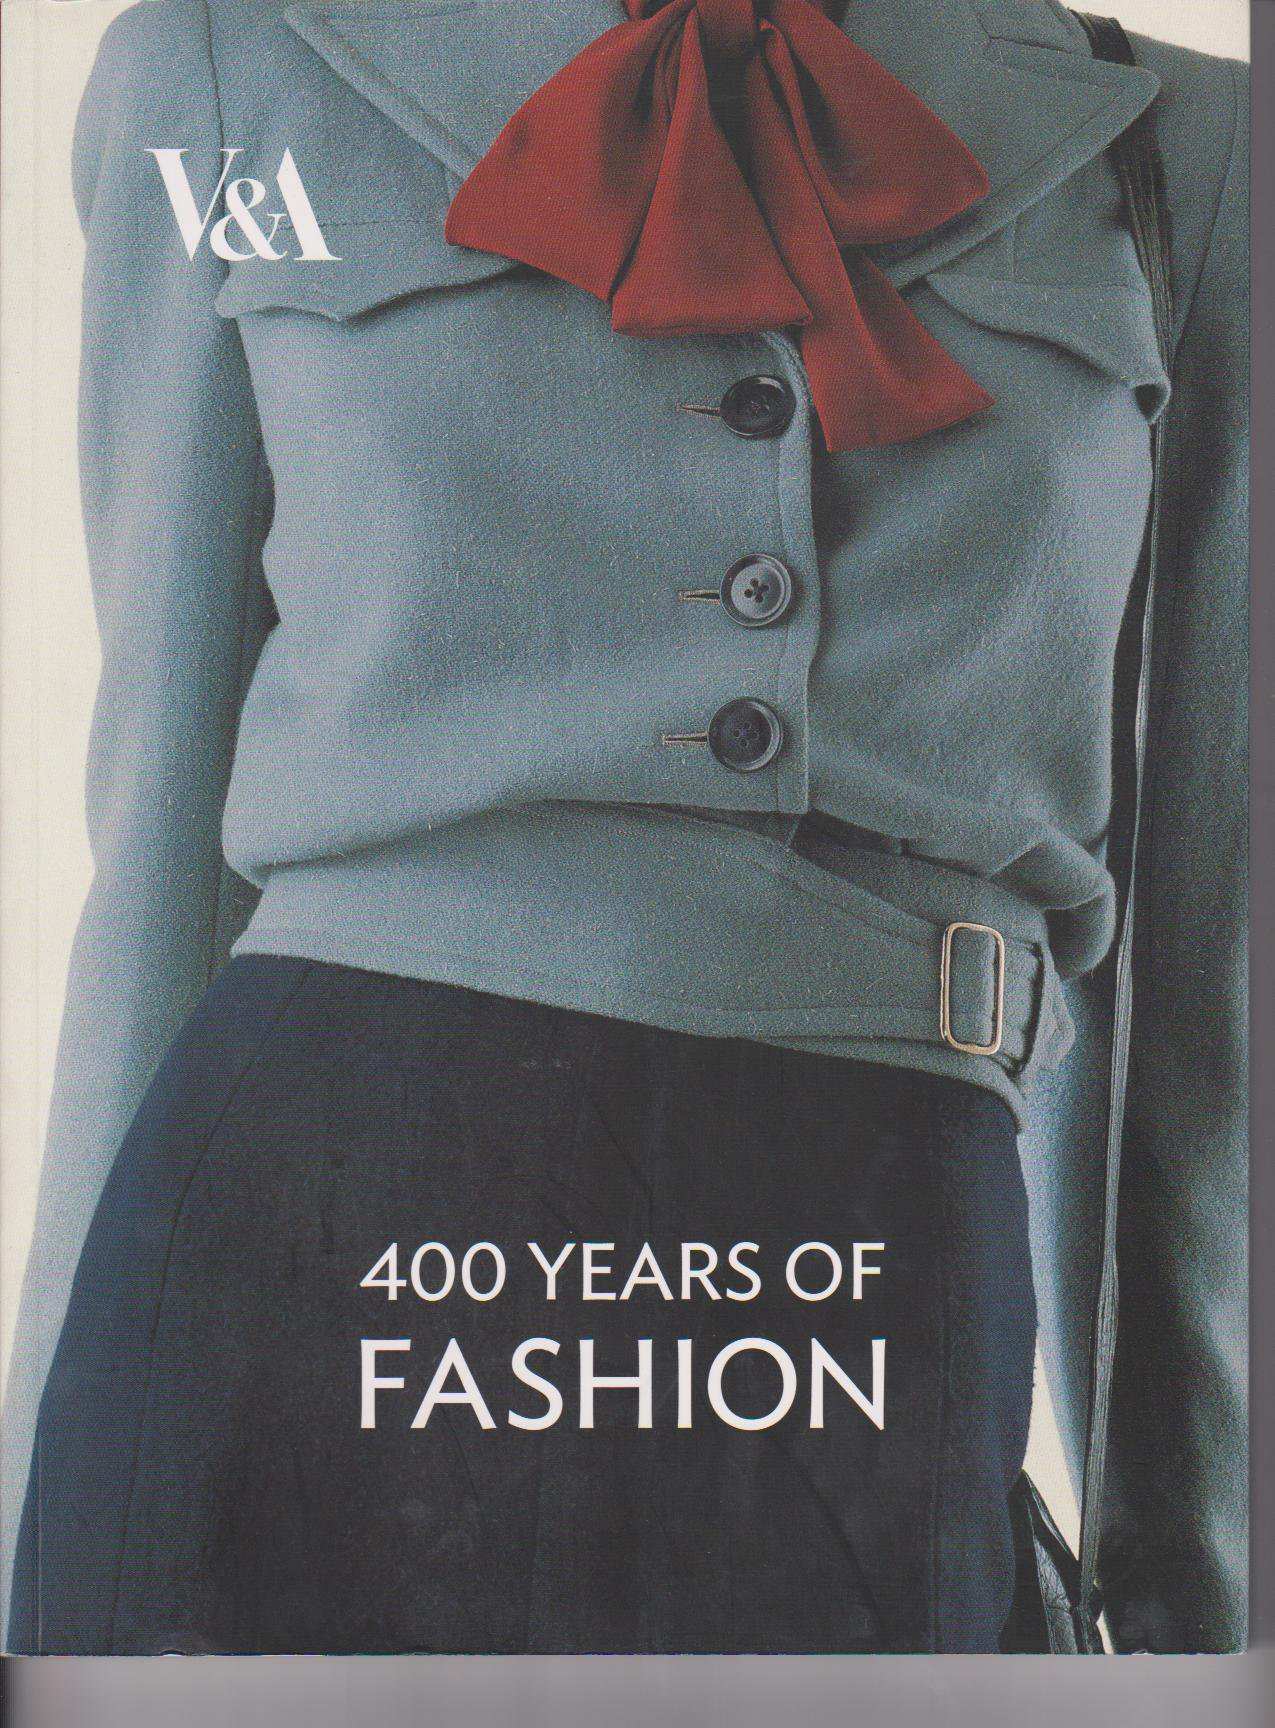 400 Years of Fashion - V&A Book - HandBound Costumes Bibliography - History of Fashion Research - Eighteenth Century Costume - Georgian Attire - 1700's Clothing - 18th Century Costume Bibliography